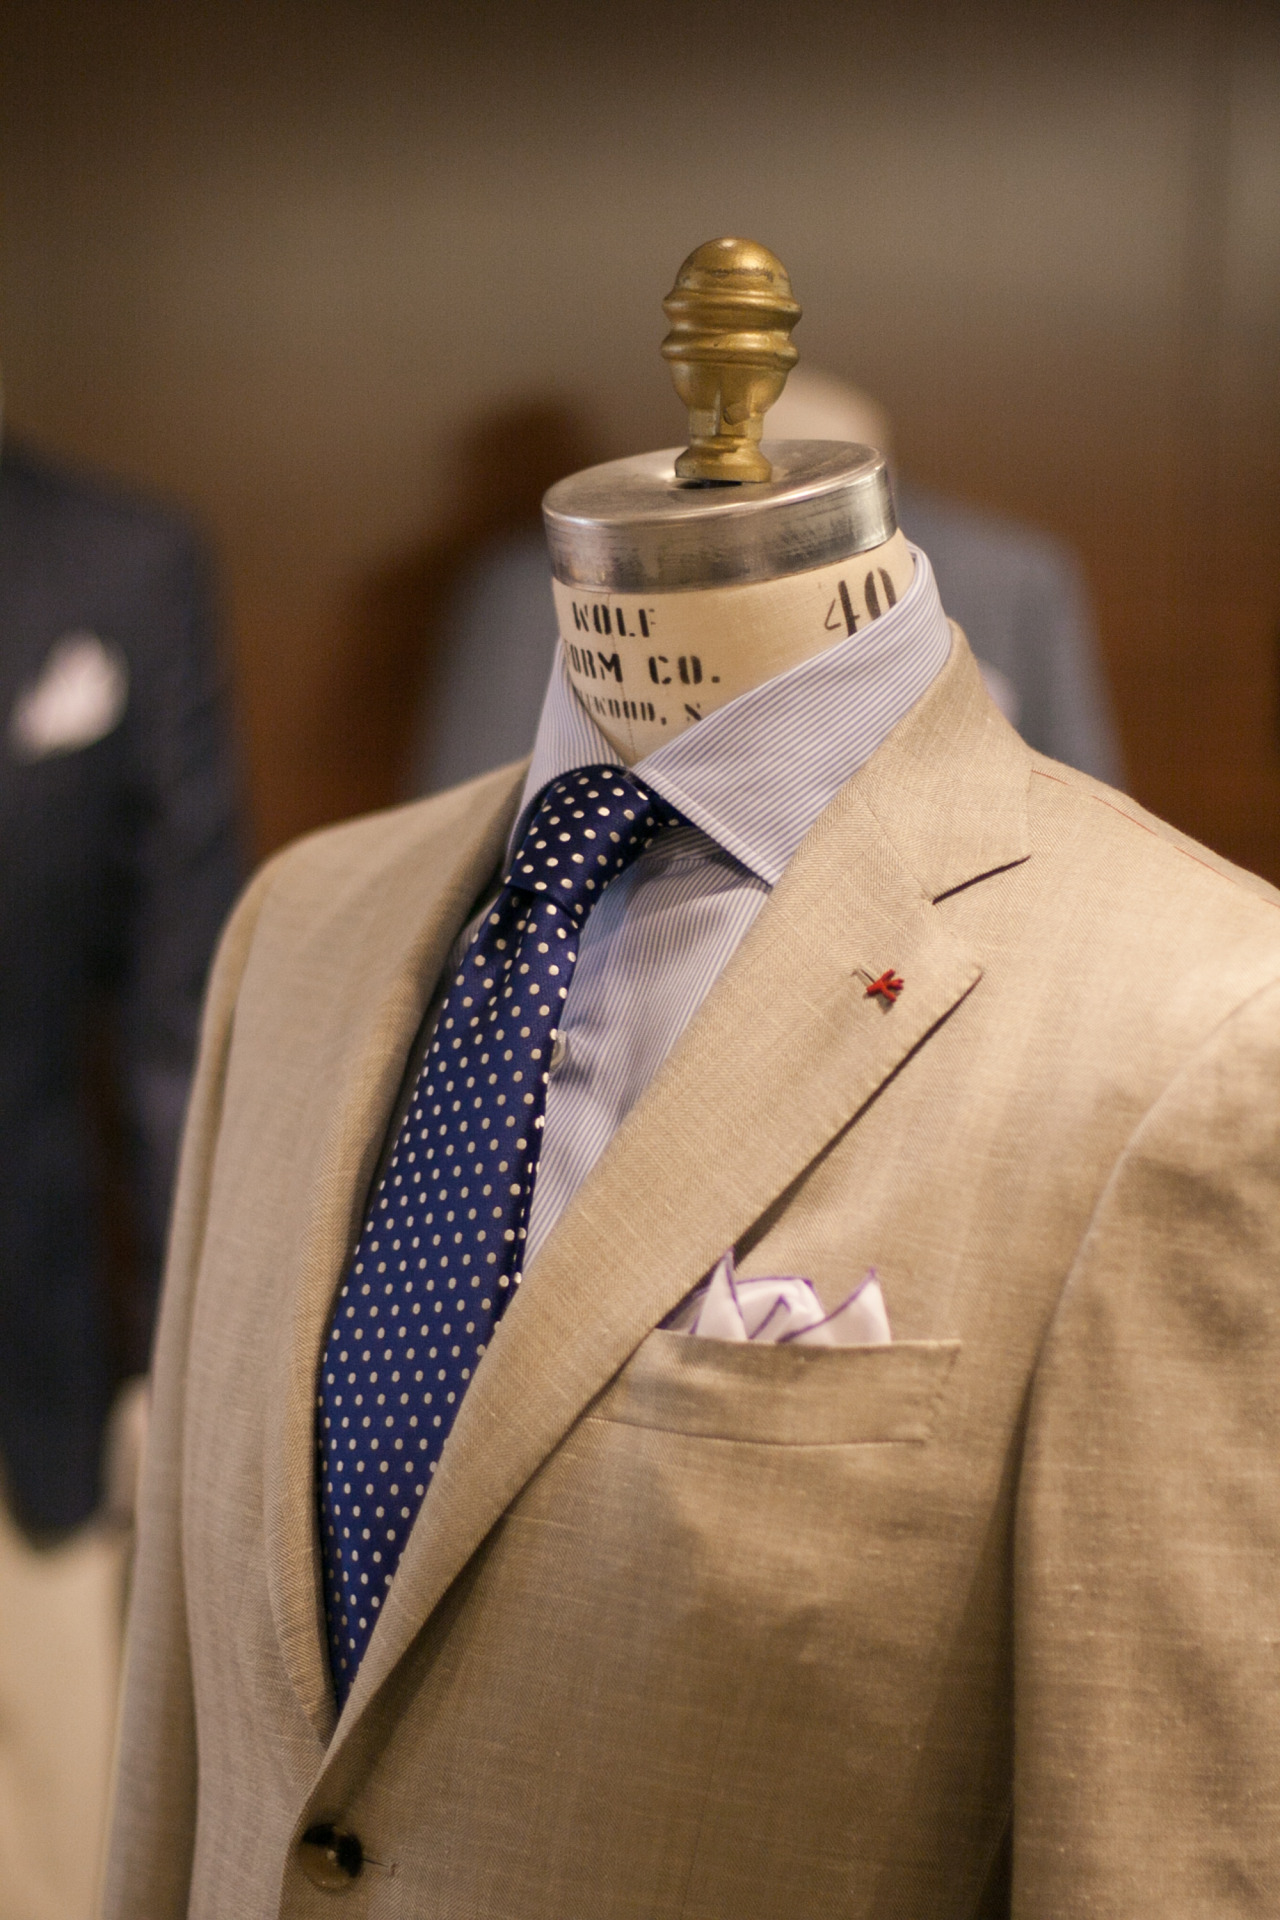 brokeandbespoke:  Isaia at Wilkes Bashford, San Francisco. Wilkes Bashford hosted an Isaia trunk show this past weekend and I had an opportunity to meet and chat briefly with the company's president, James Shay. He seemed like a nice guy who's enthusiastic about running a company that makes some of the most amazing clothing-that-I-can't-afford around.